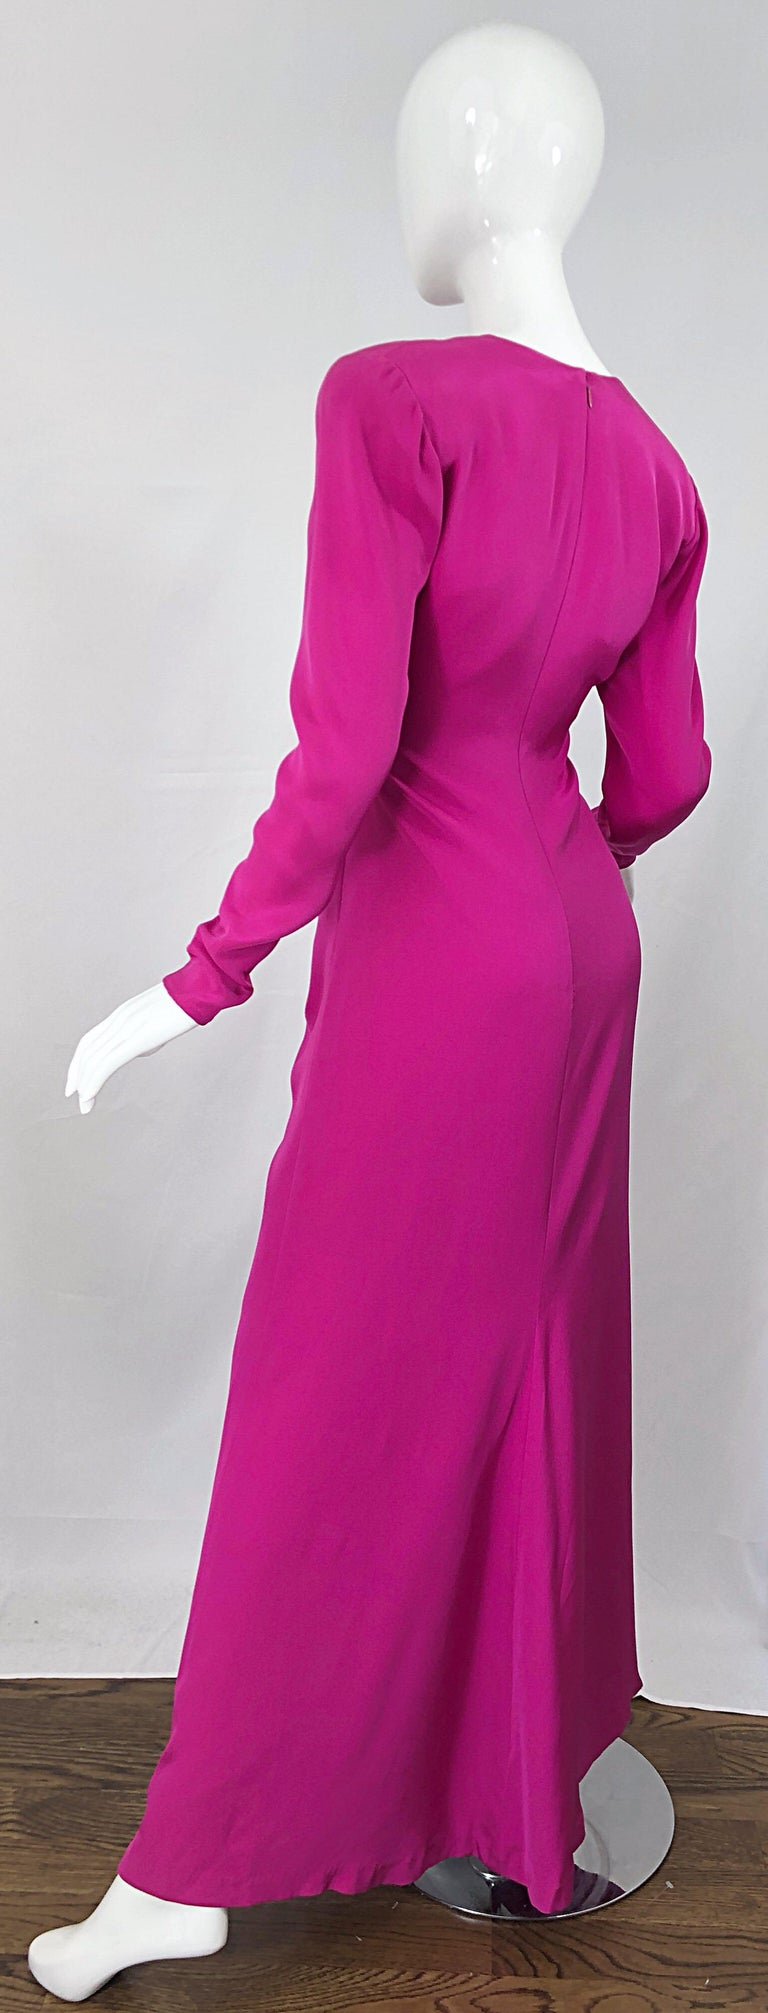 Vintage Bill Blass Size 10 Hot Pink Silk Jersey Cut - Out 1980s 80s Evening Gown For Sale 12